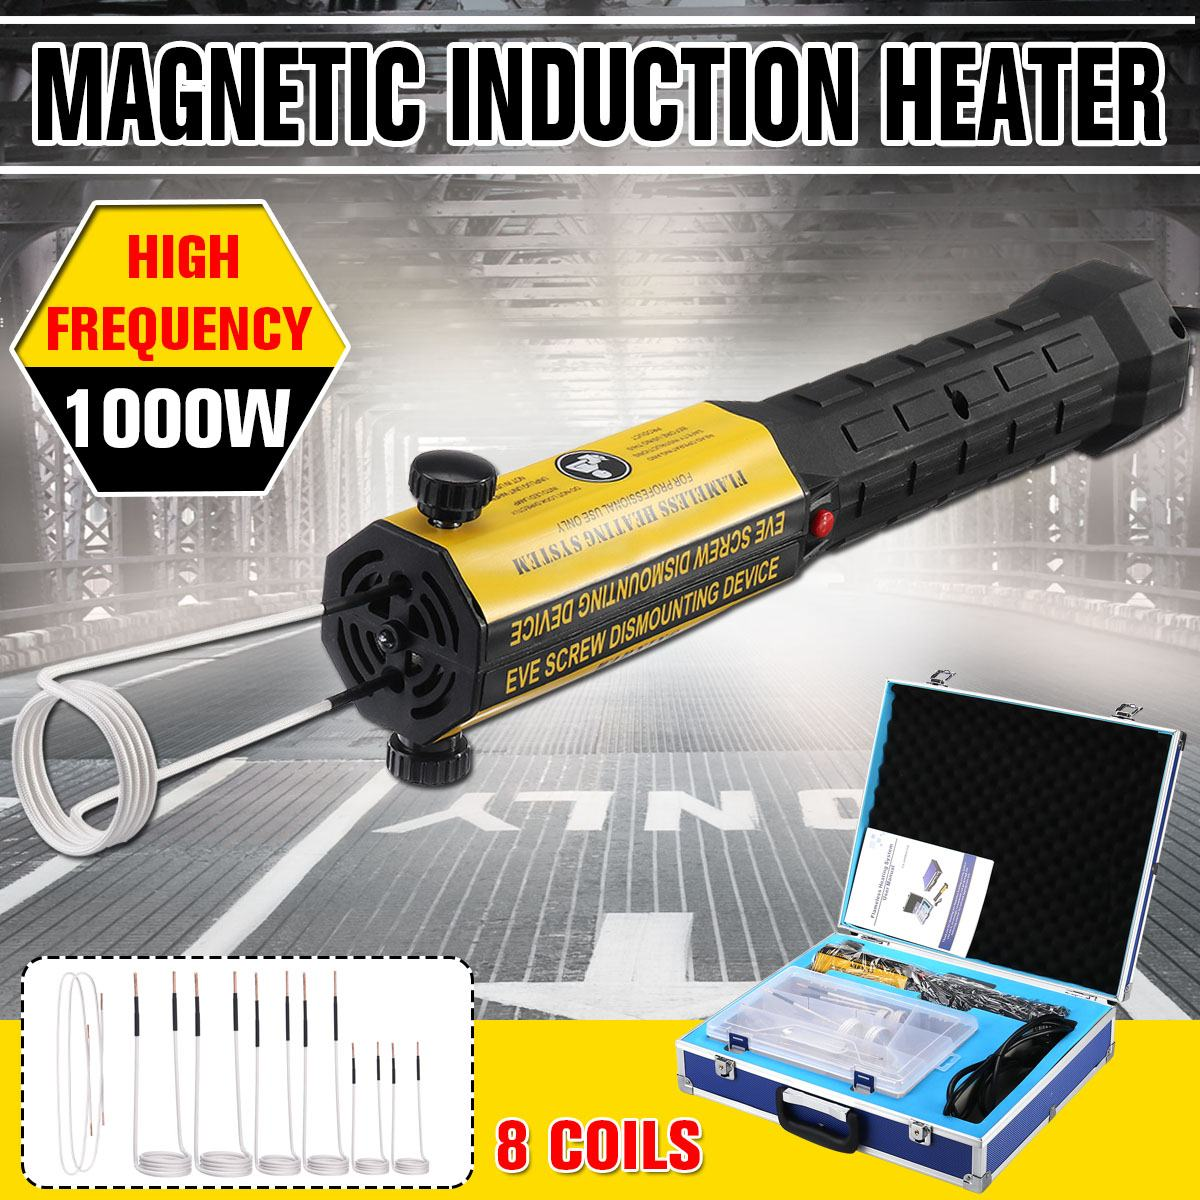 Induction Heater Bolt Heat Remover Tool Kit 110V/220V 1000W Magnetic Induction Flameless Heater With 8 Coils Car Repair Tool